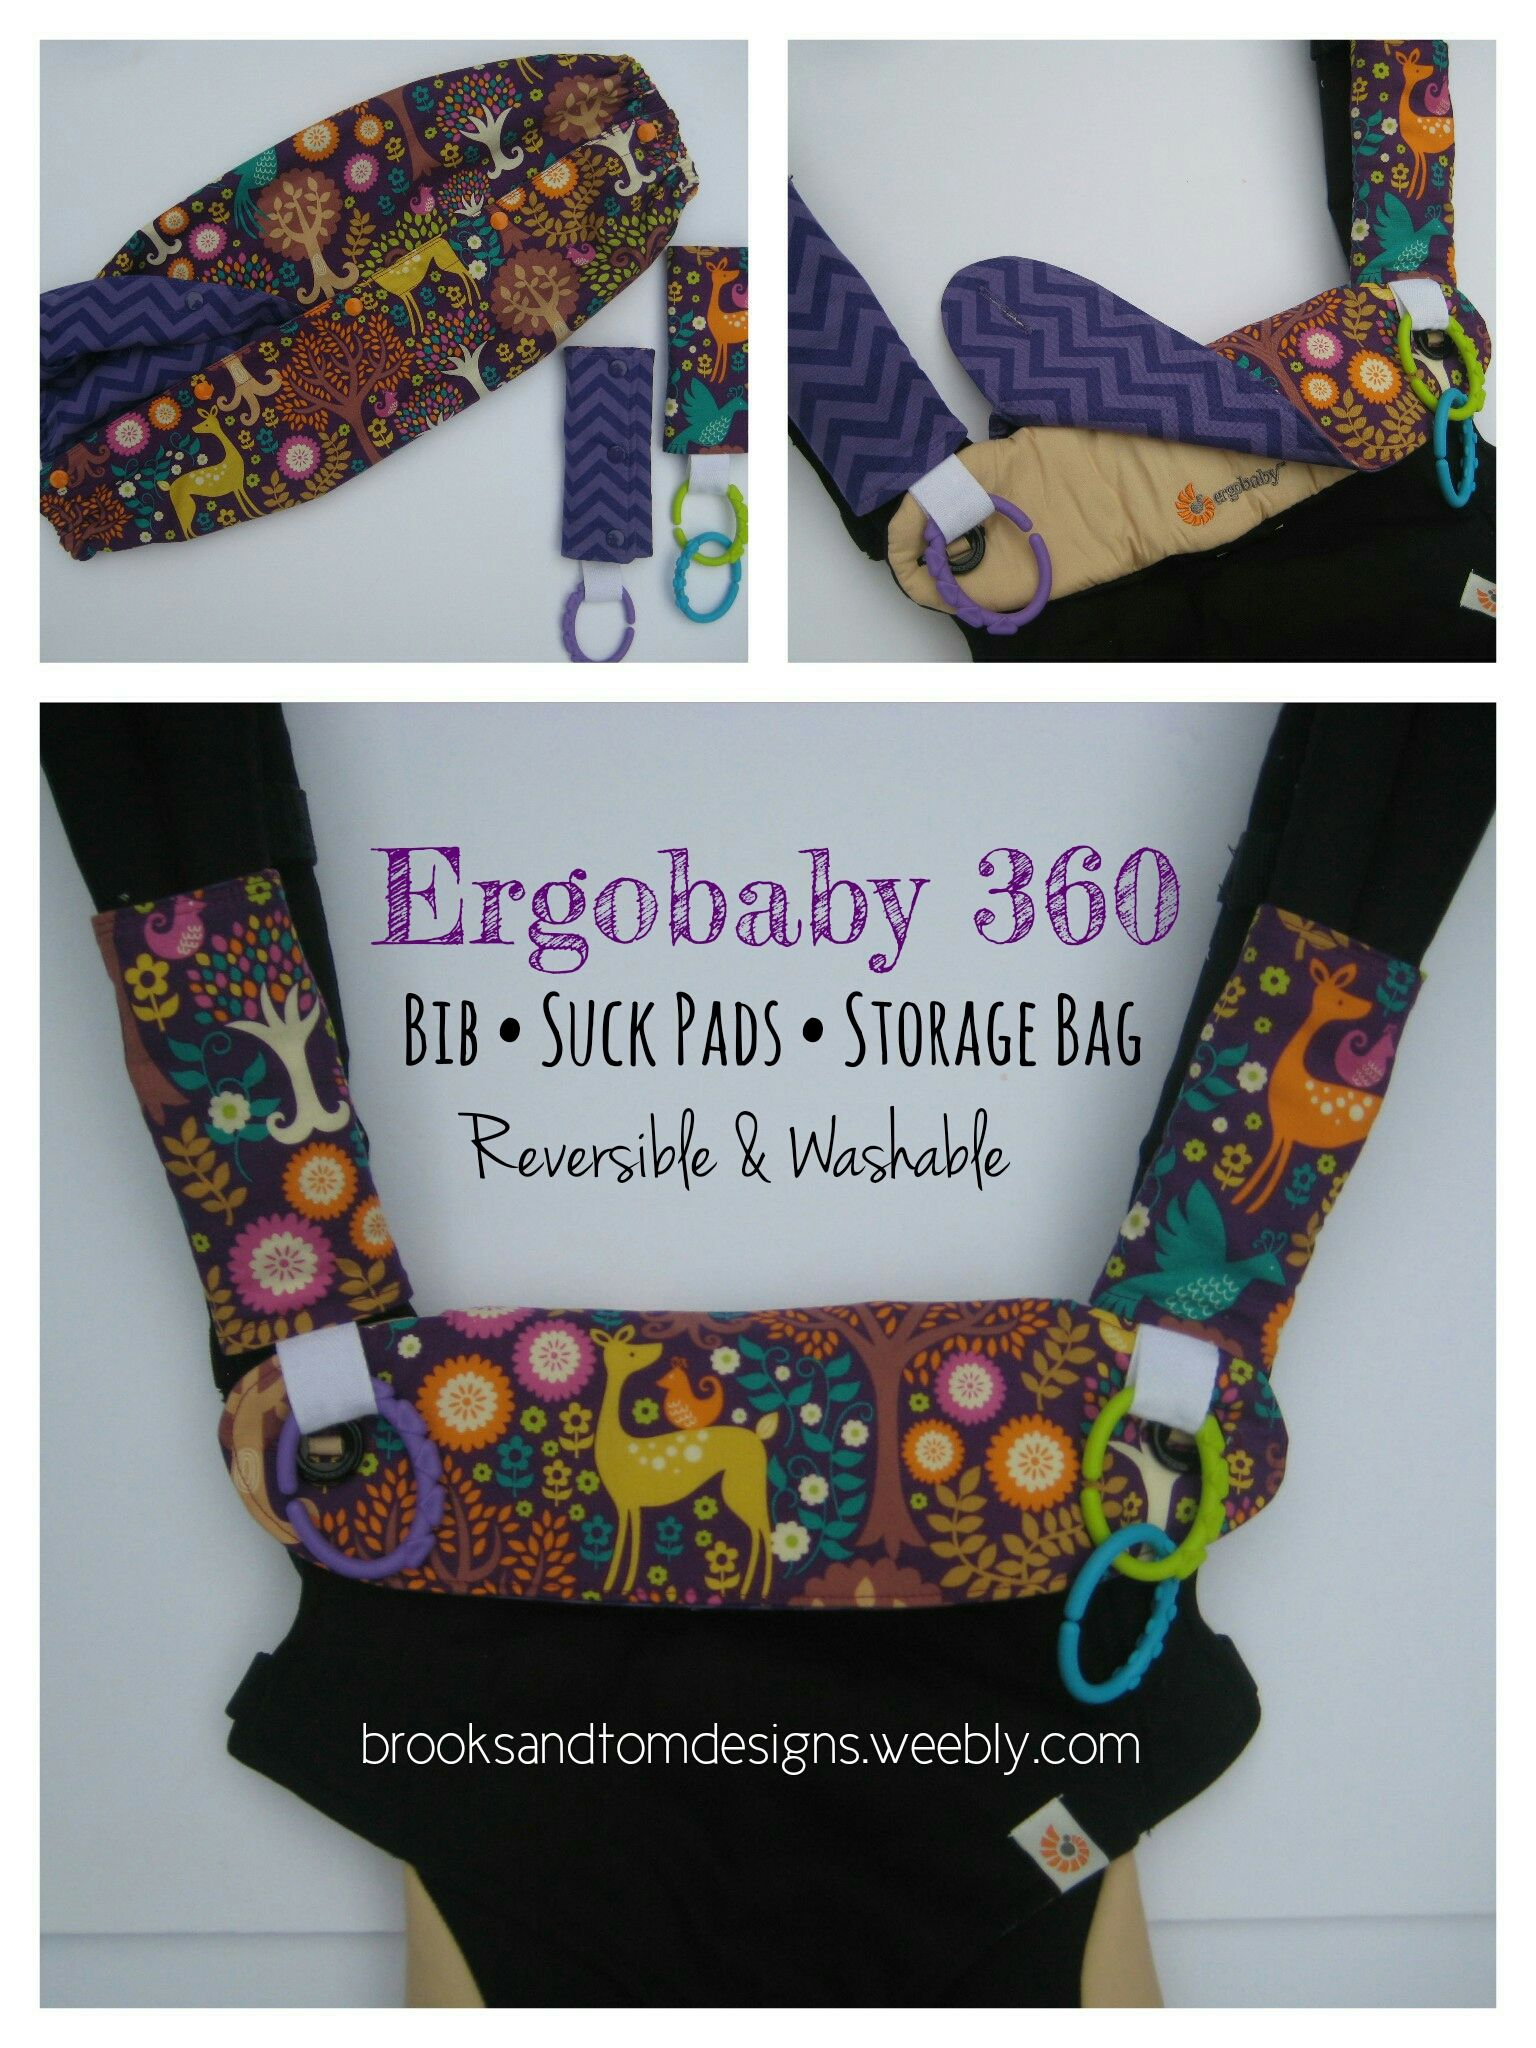 db64d0680ed Baby carrier accessories handmade in Ottawa